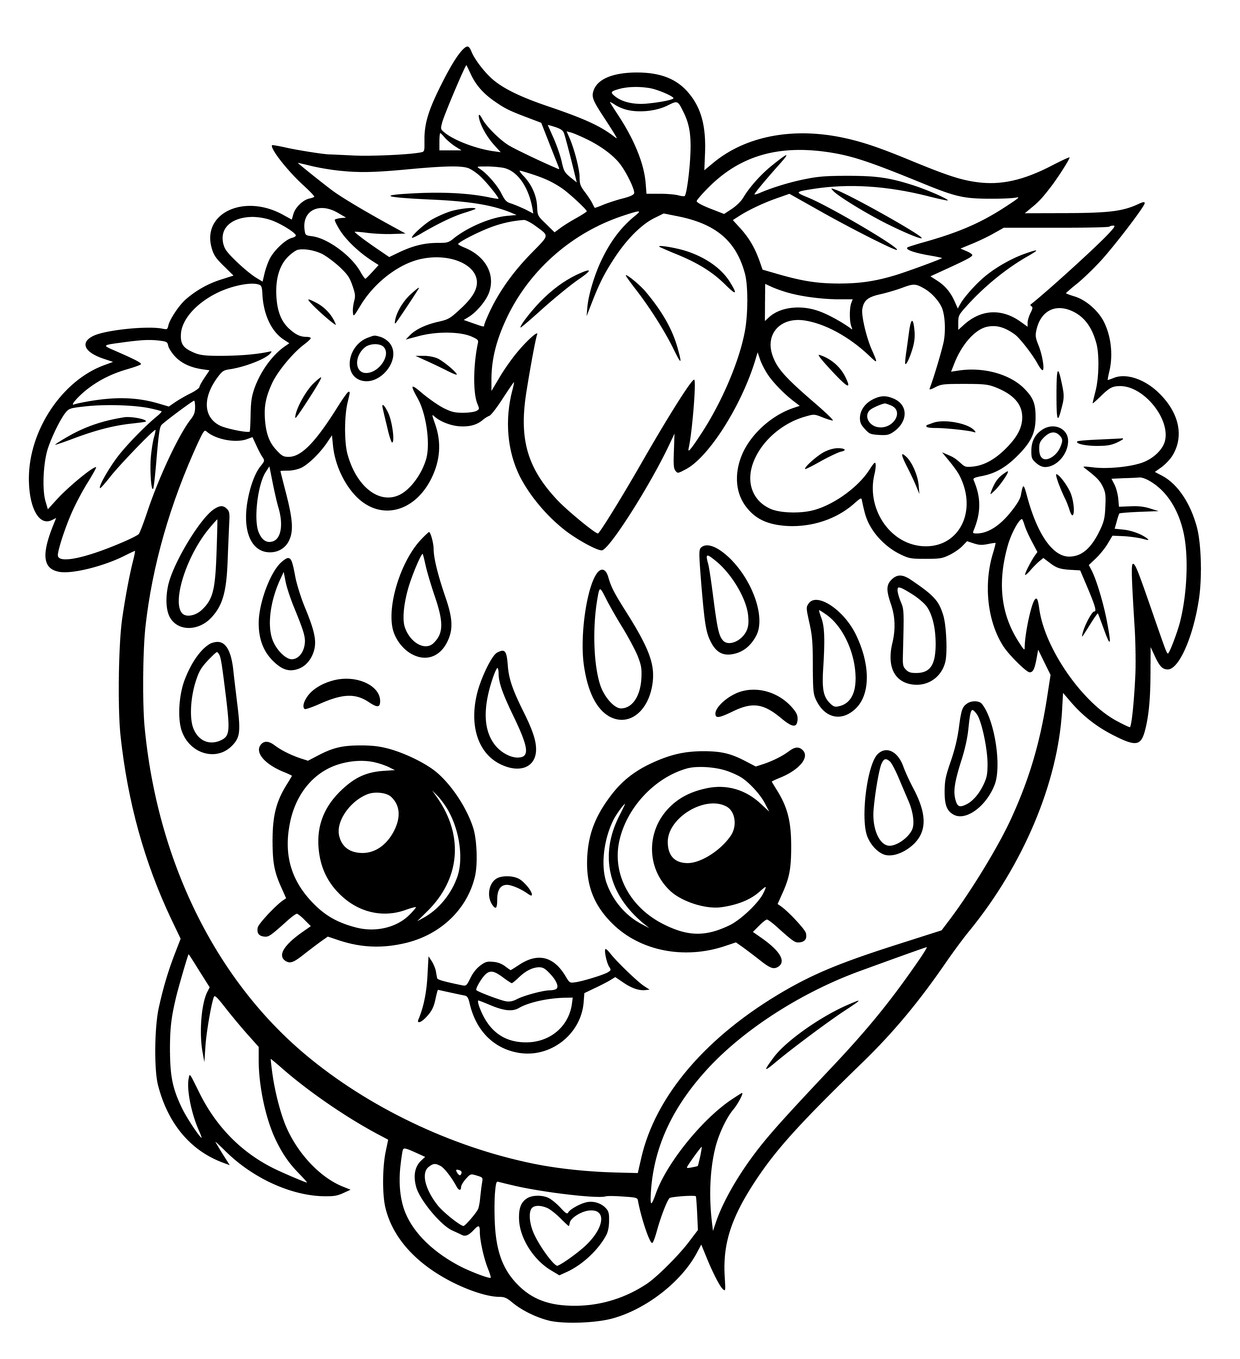 Shopkins Coloring Pages 16 For Kids Beauteous To Print Printable